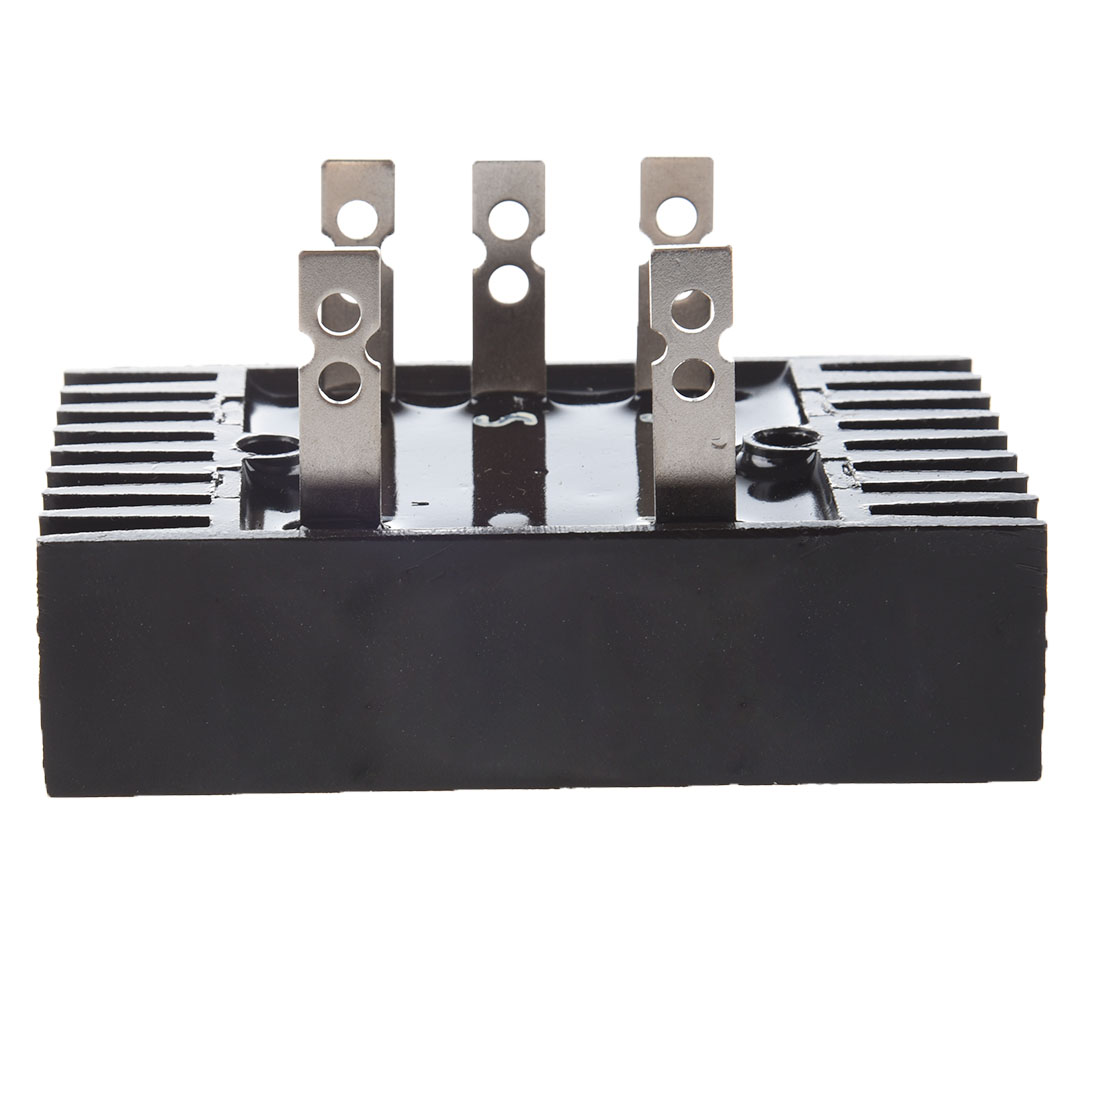 3 Phase Diode Bridge Rectifier 100A 1200V SQL100A3 Phase Diode Bridge Rectifier 100A 1200V SQL100A